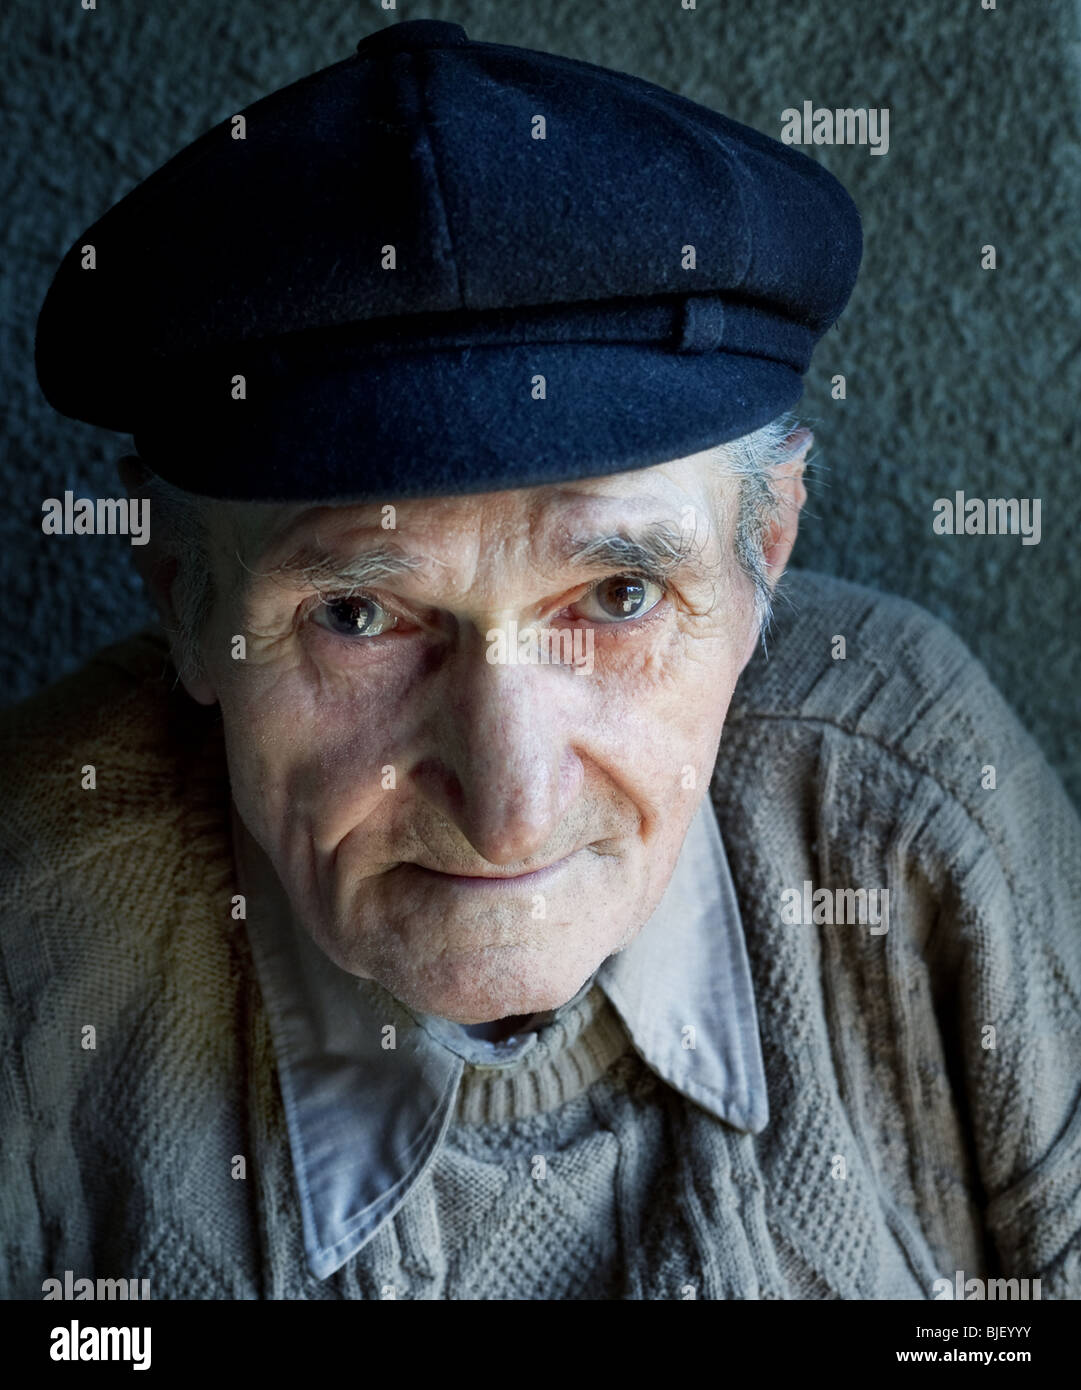 Portrait of friendly senior man - Stock Image